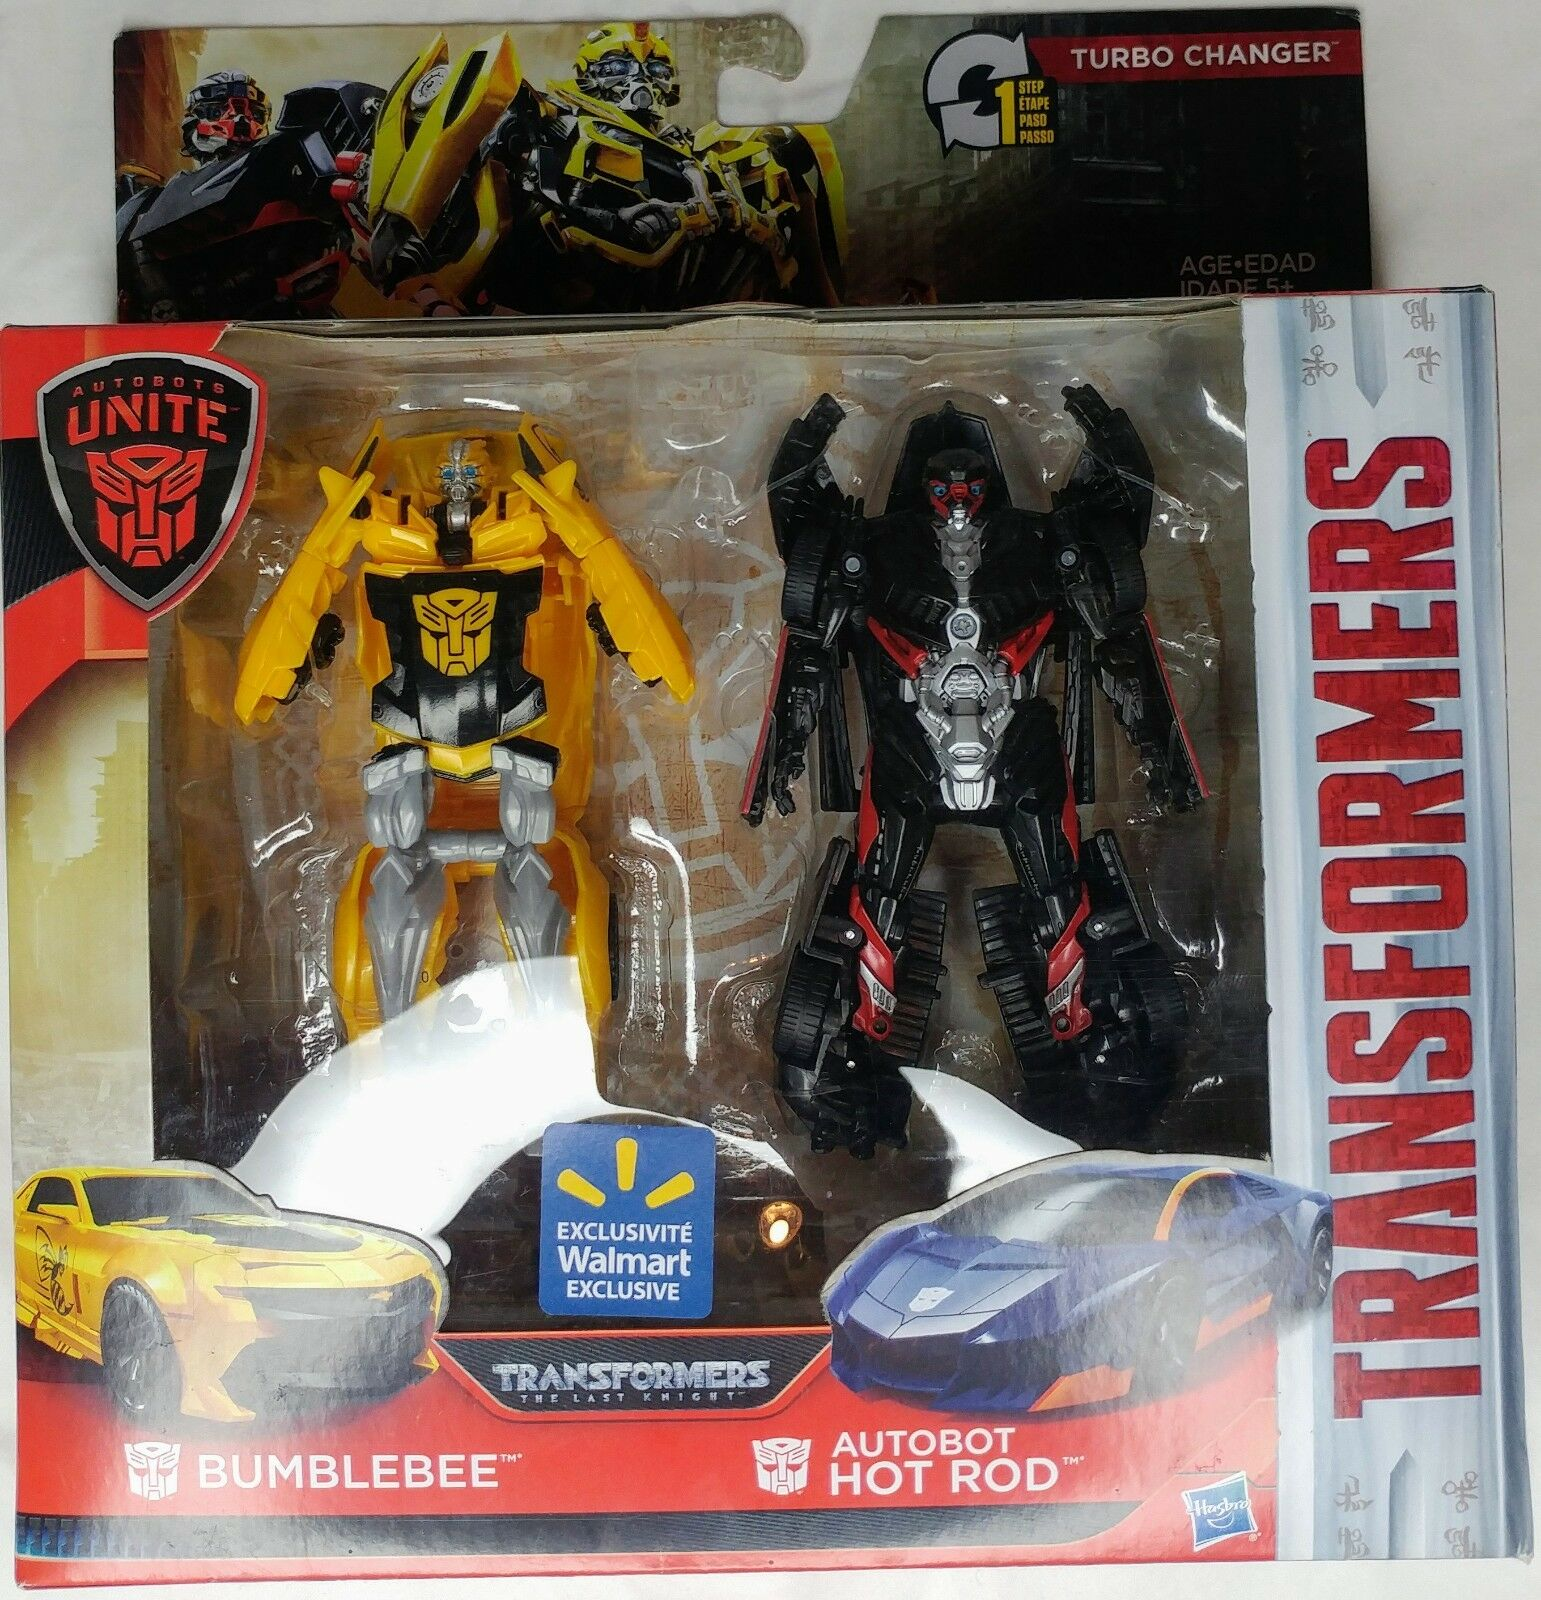 TRANSFORMERS BUMBLEBEE HOT ROD AUTOBOTS UNITE WALMART EXCLUSIVE 1-STEP CHANGERS